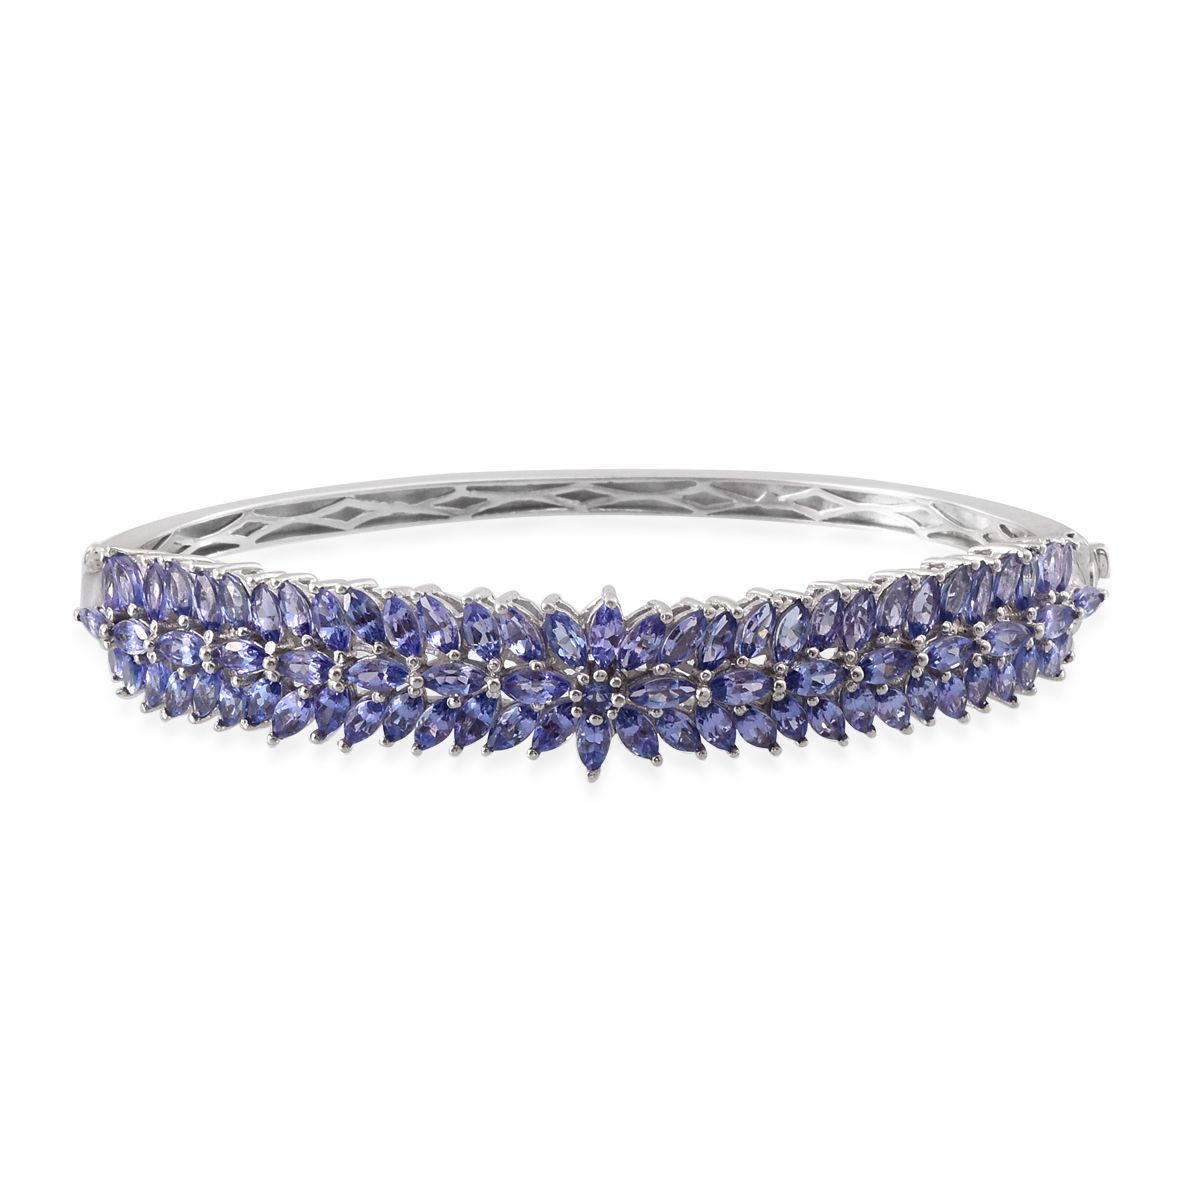 Tanzanite, Diamond Platinum Over Sterling Silver Bangle (7.5) TGW 11.81 cts.